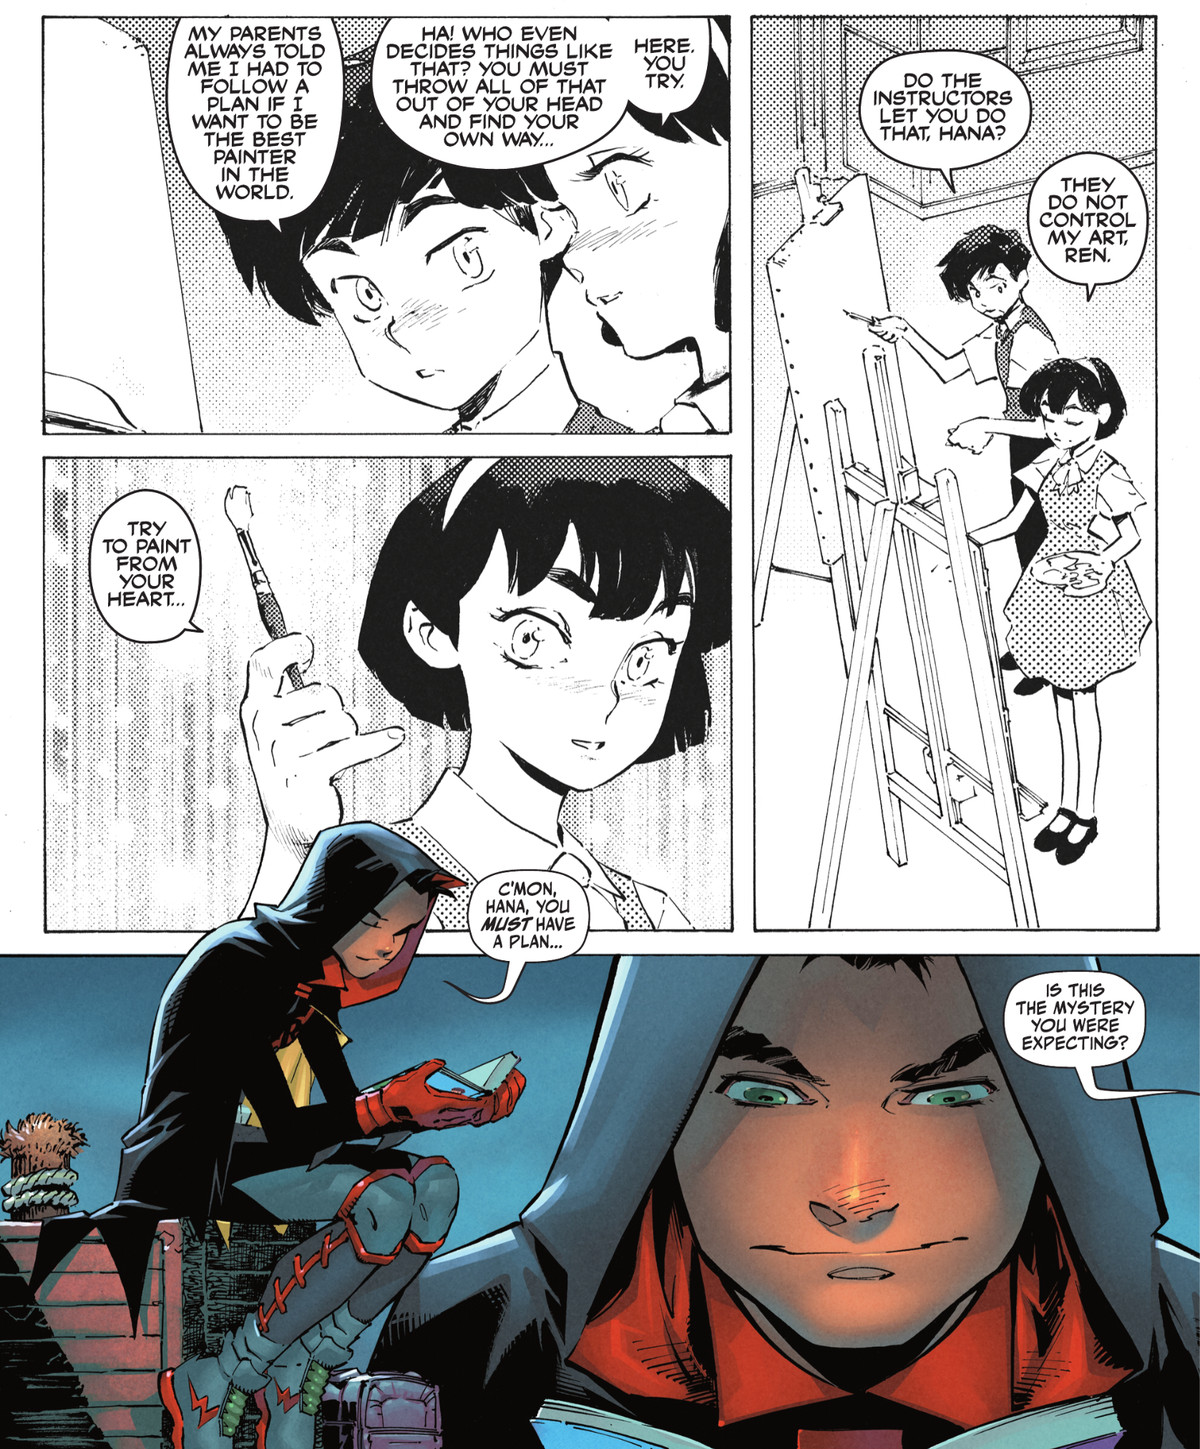 """""""Try to paint from your heart,"""" a young girl tells her friend in a manga Damian Wayne is reading. """"C'mon Hana, you must have a plan,"""" he mutters to the book. The manga panels are presented in a Western reading order, in Robin #1, DC Comics (2021)."""